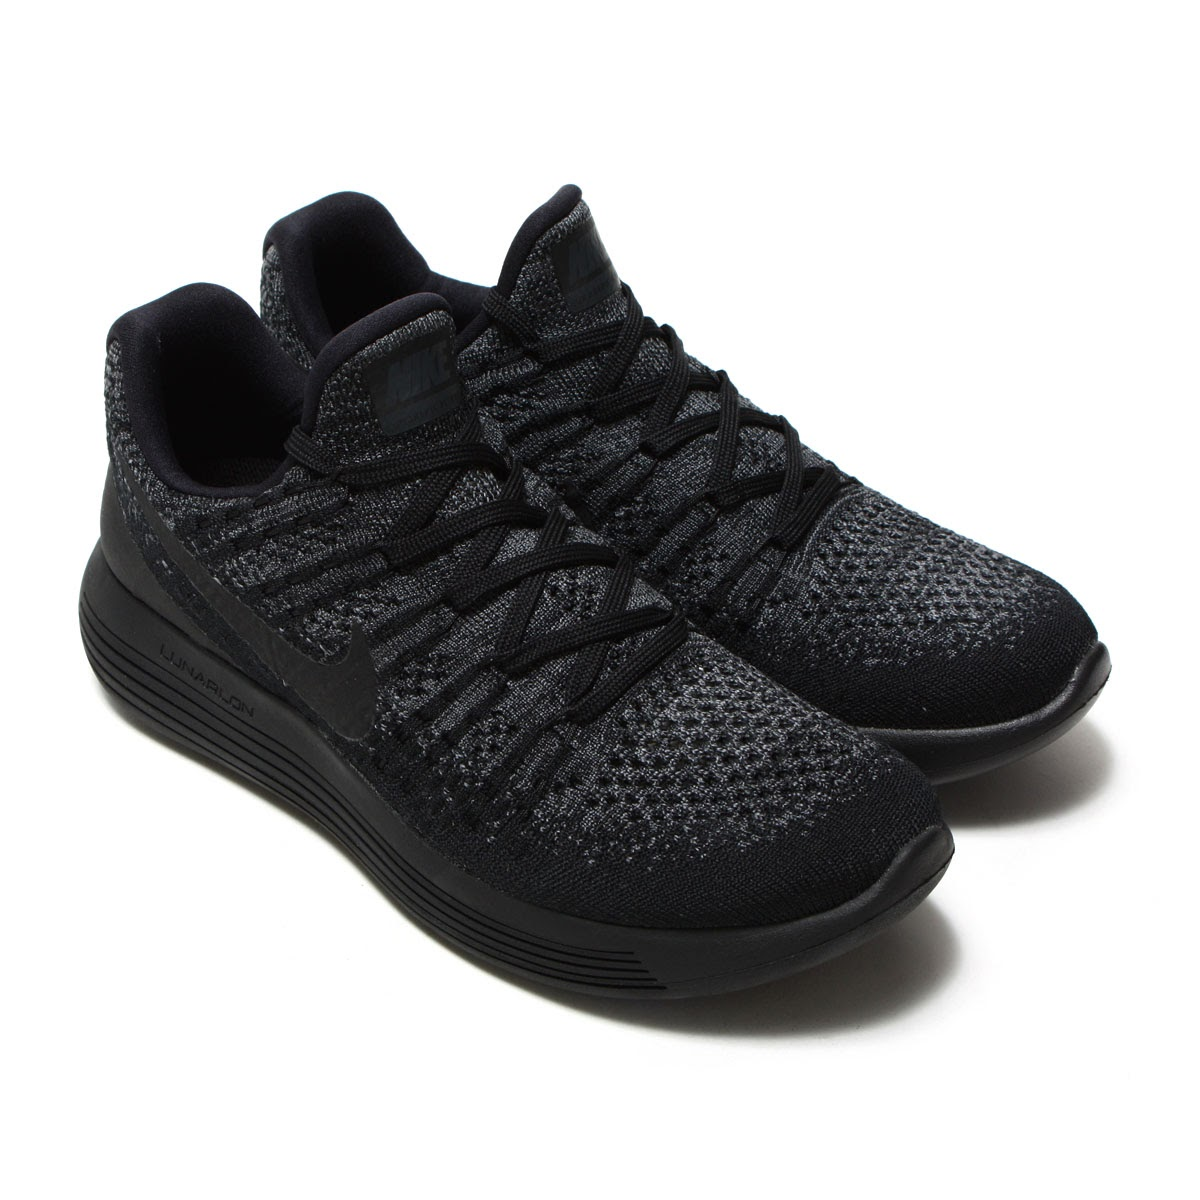 b1cfcf17cca19 ... aliexpress nike w lunarepic low flyknit 2 nike women luna epic loaf rye  knit 2 black